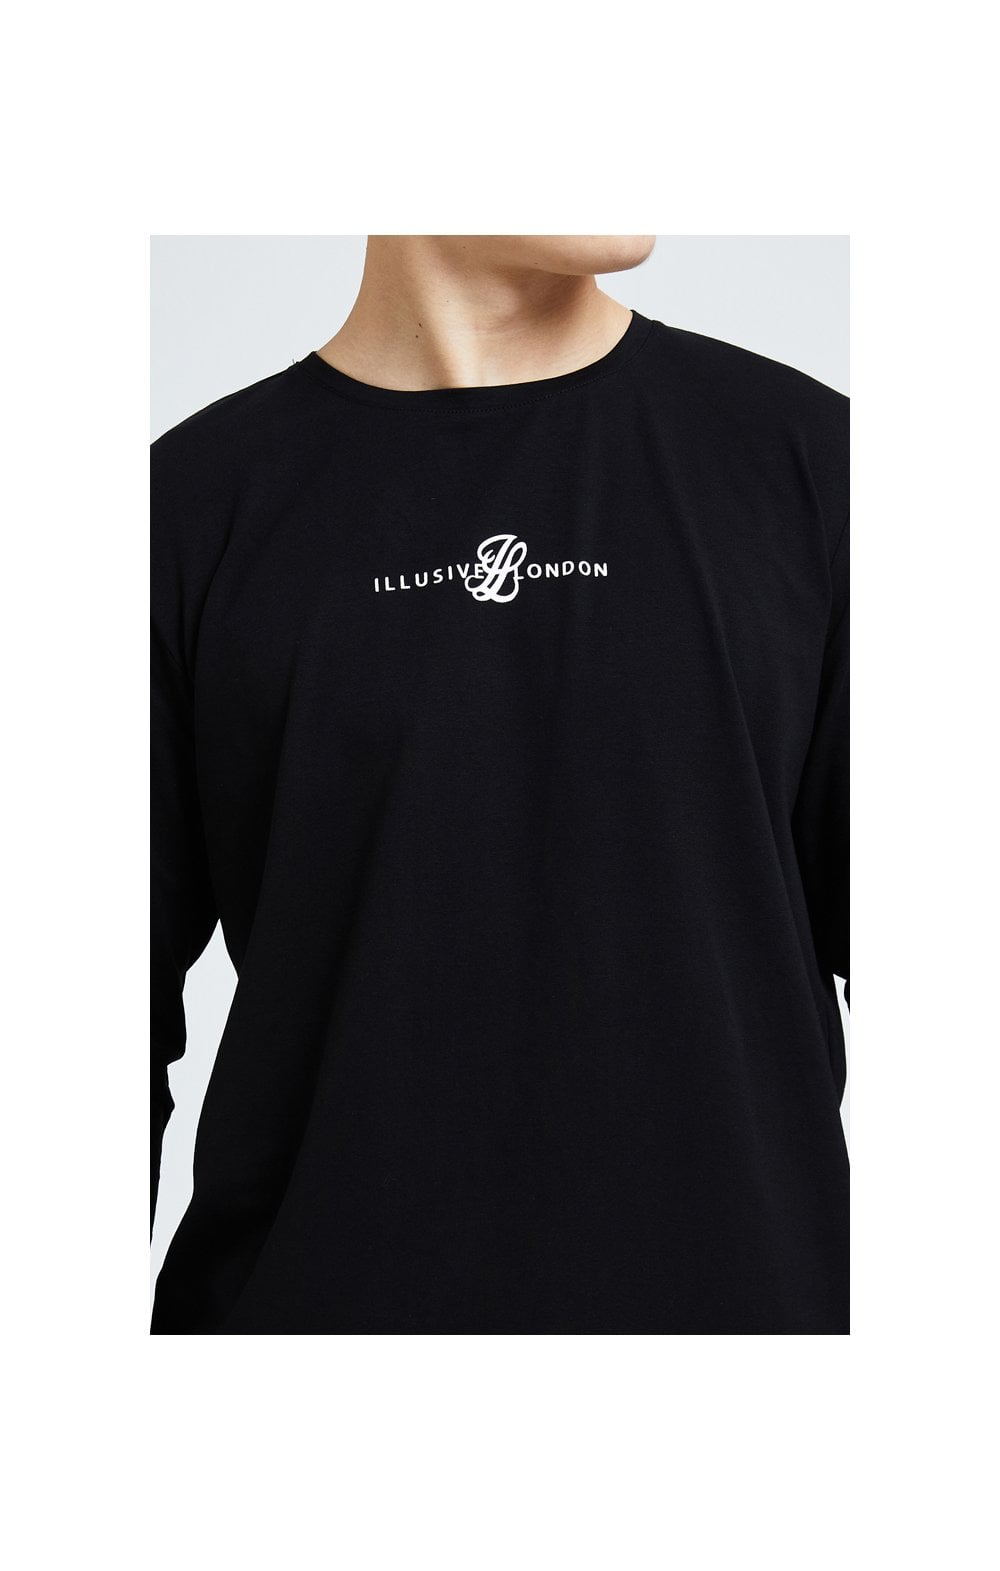 Illusive London Dual L/S Tee - Black